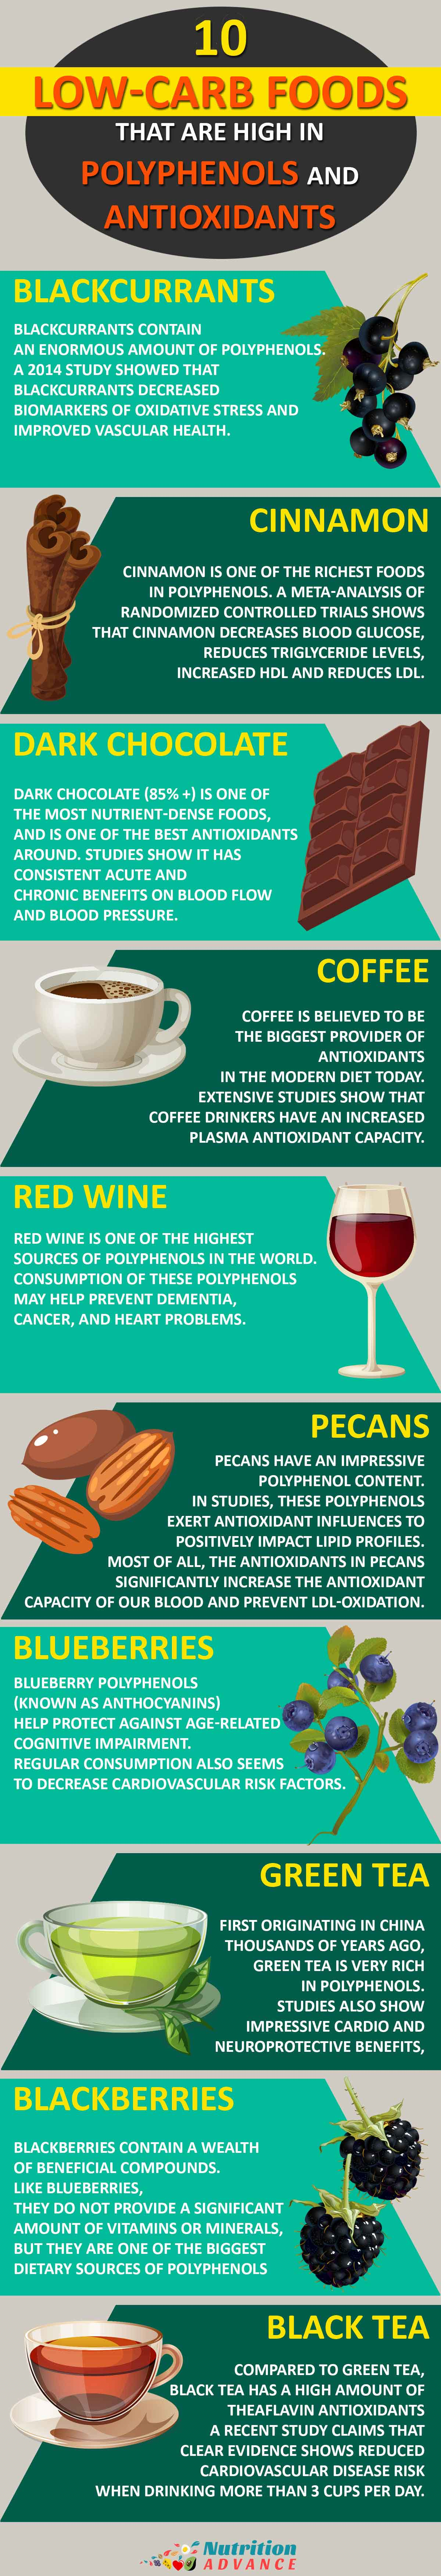 Infographic showing sources of low carb polyphenols and antioxidants